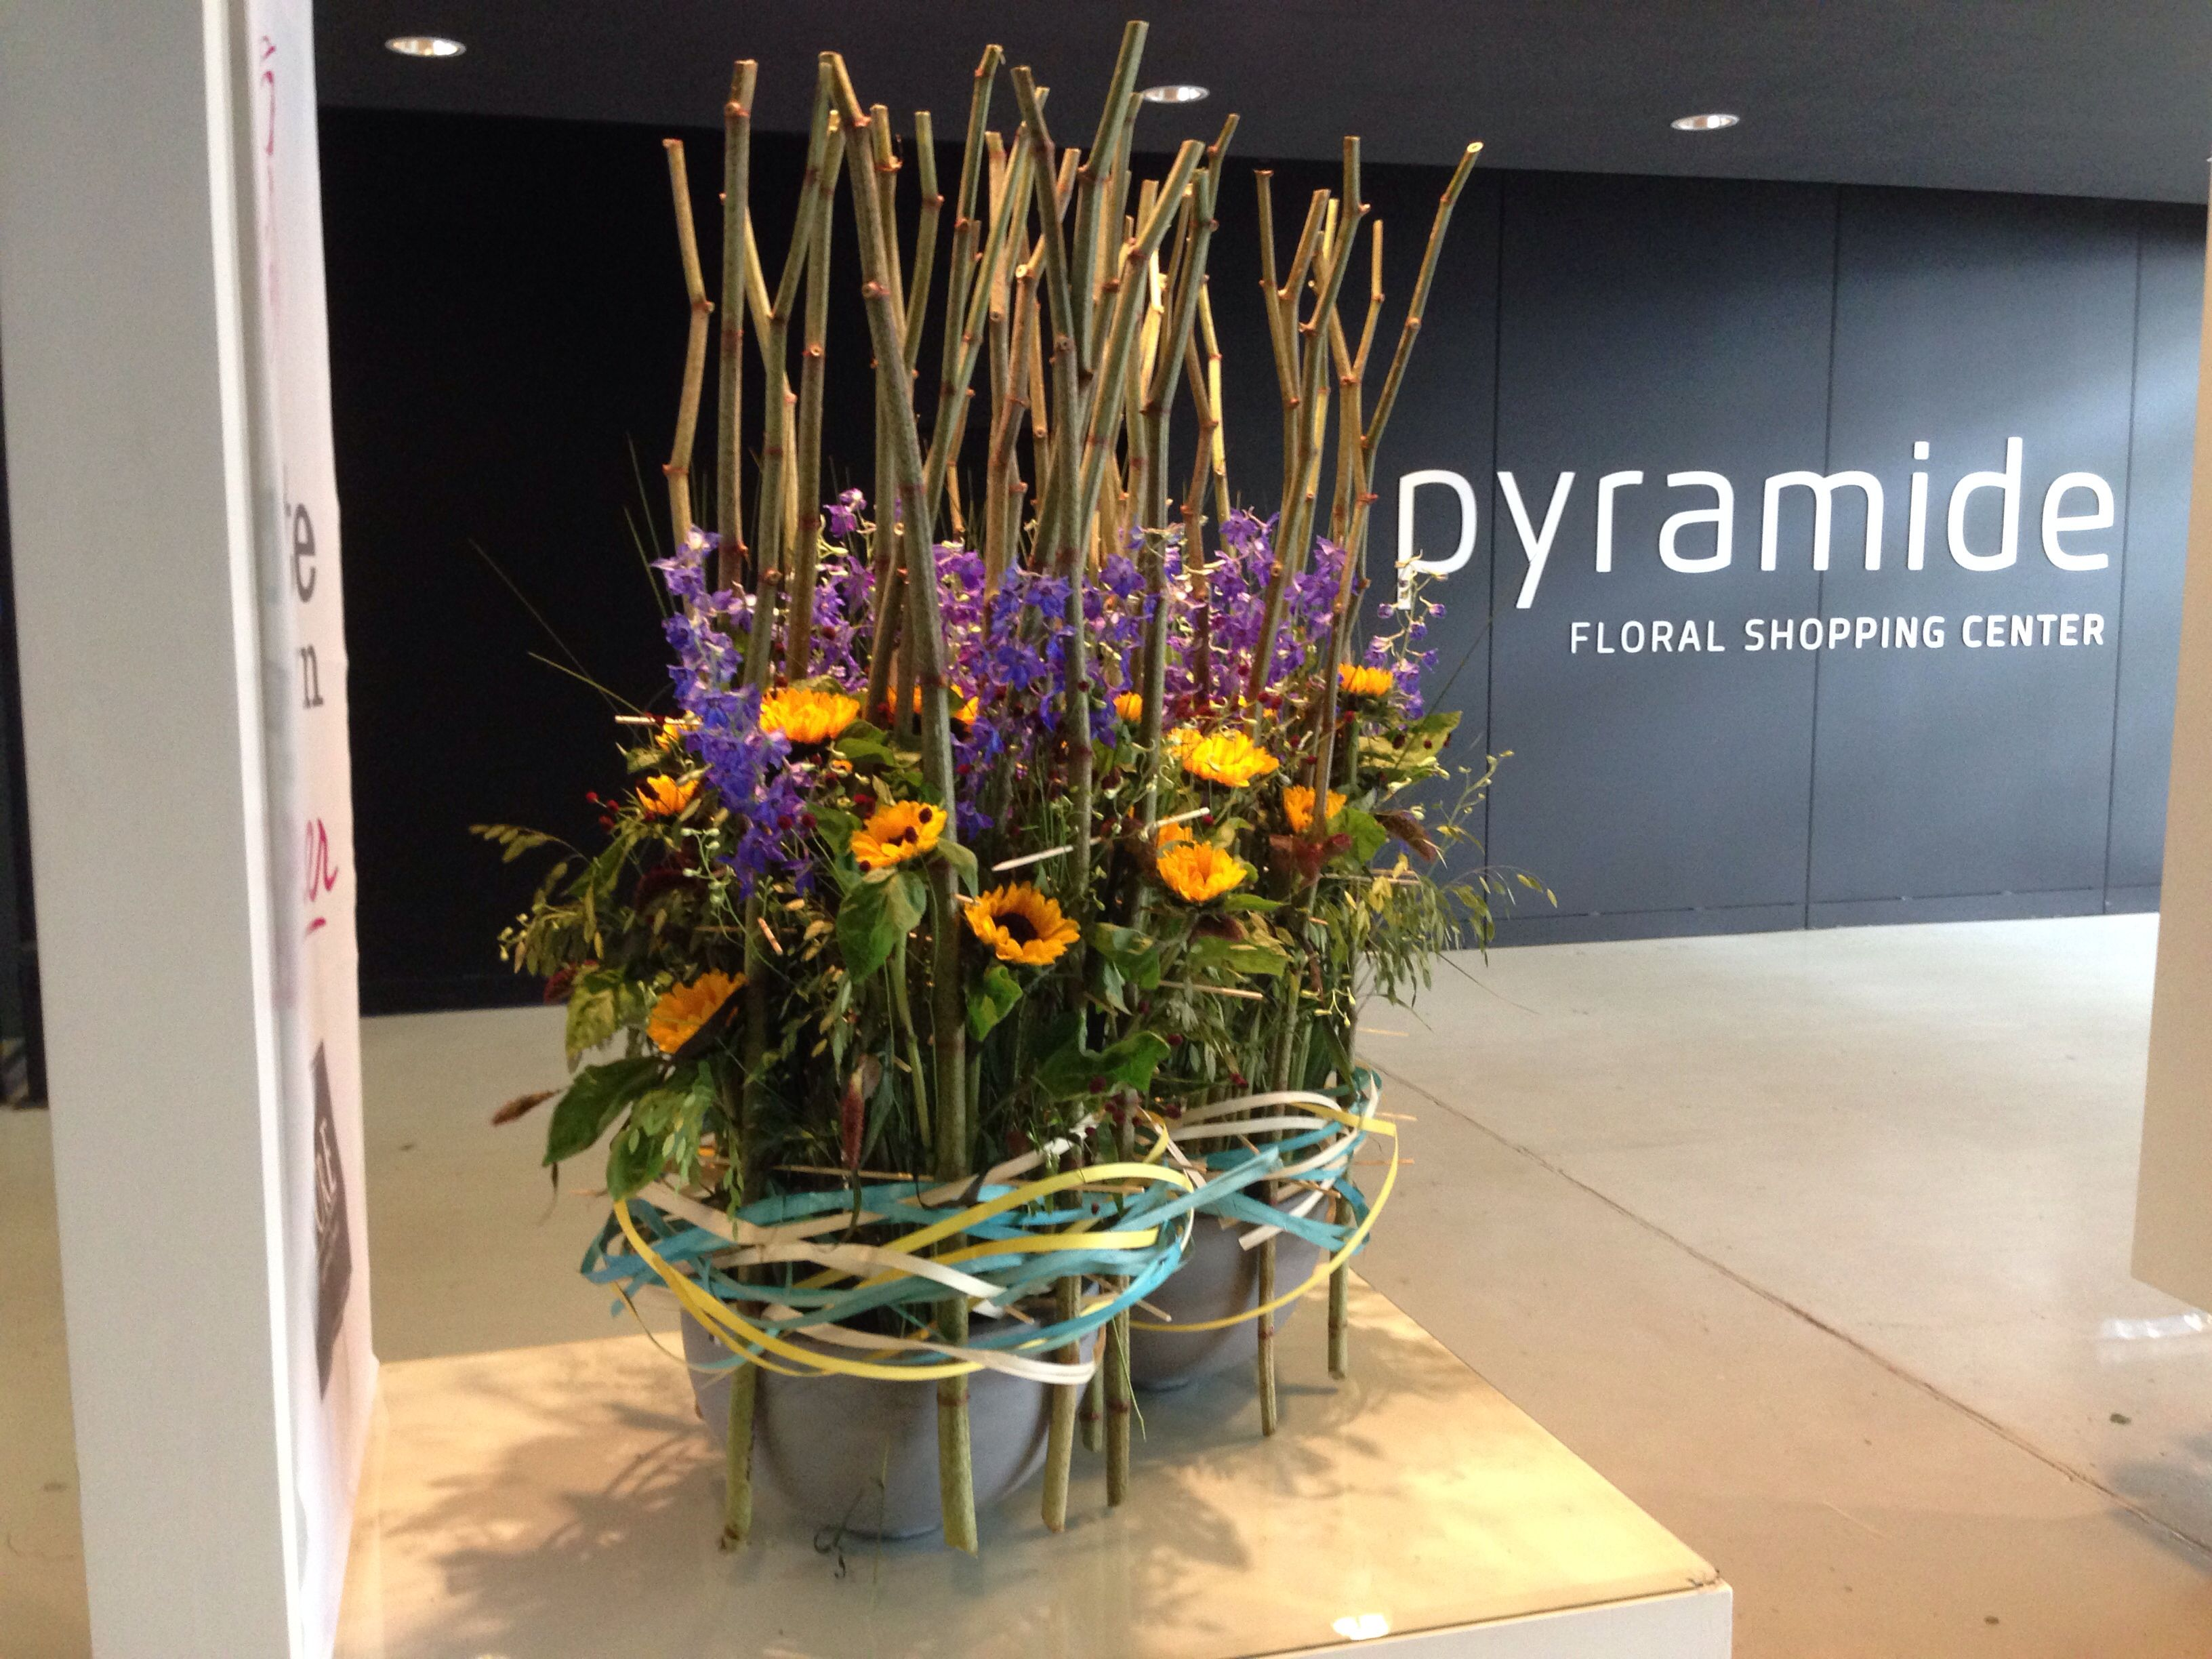 Flowerevent Summer Edition Pyramide Floral Shopping Center